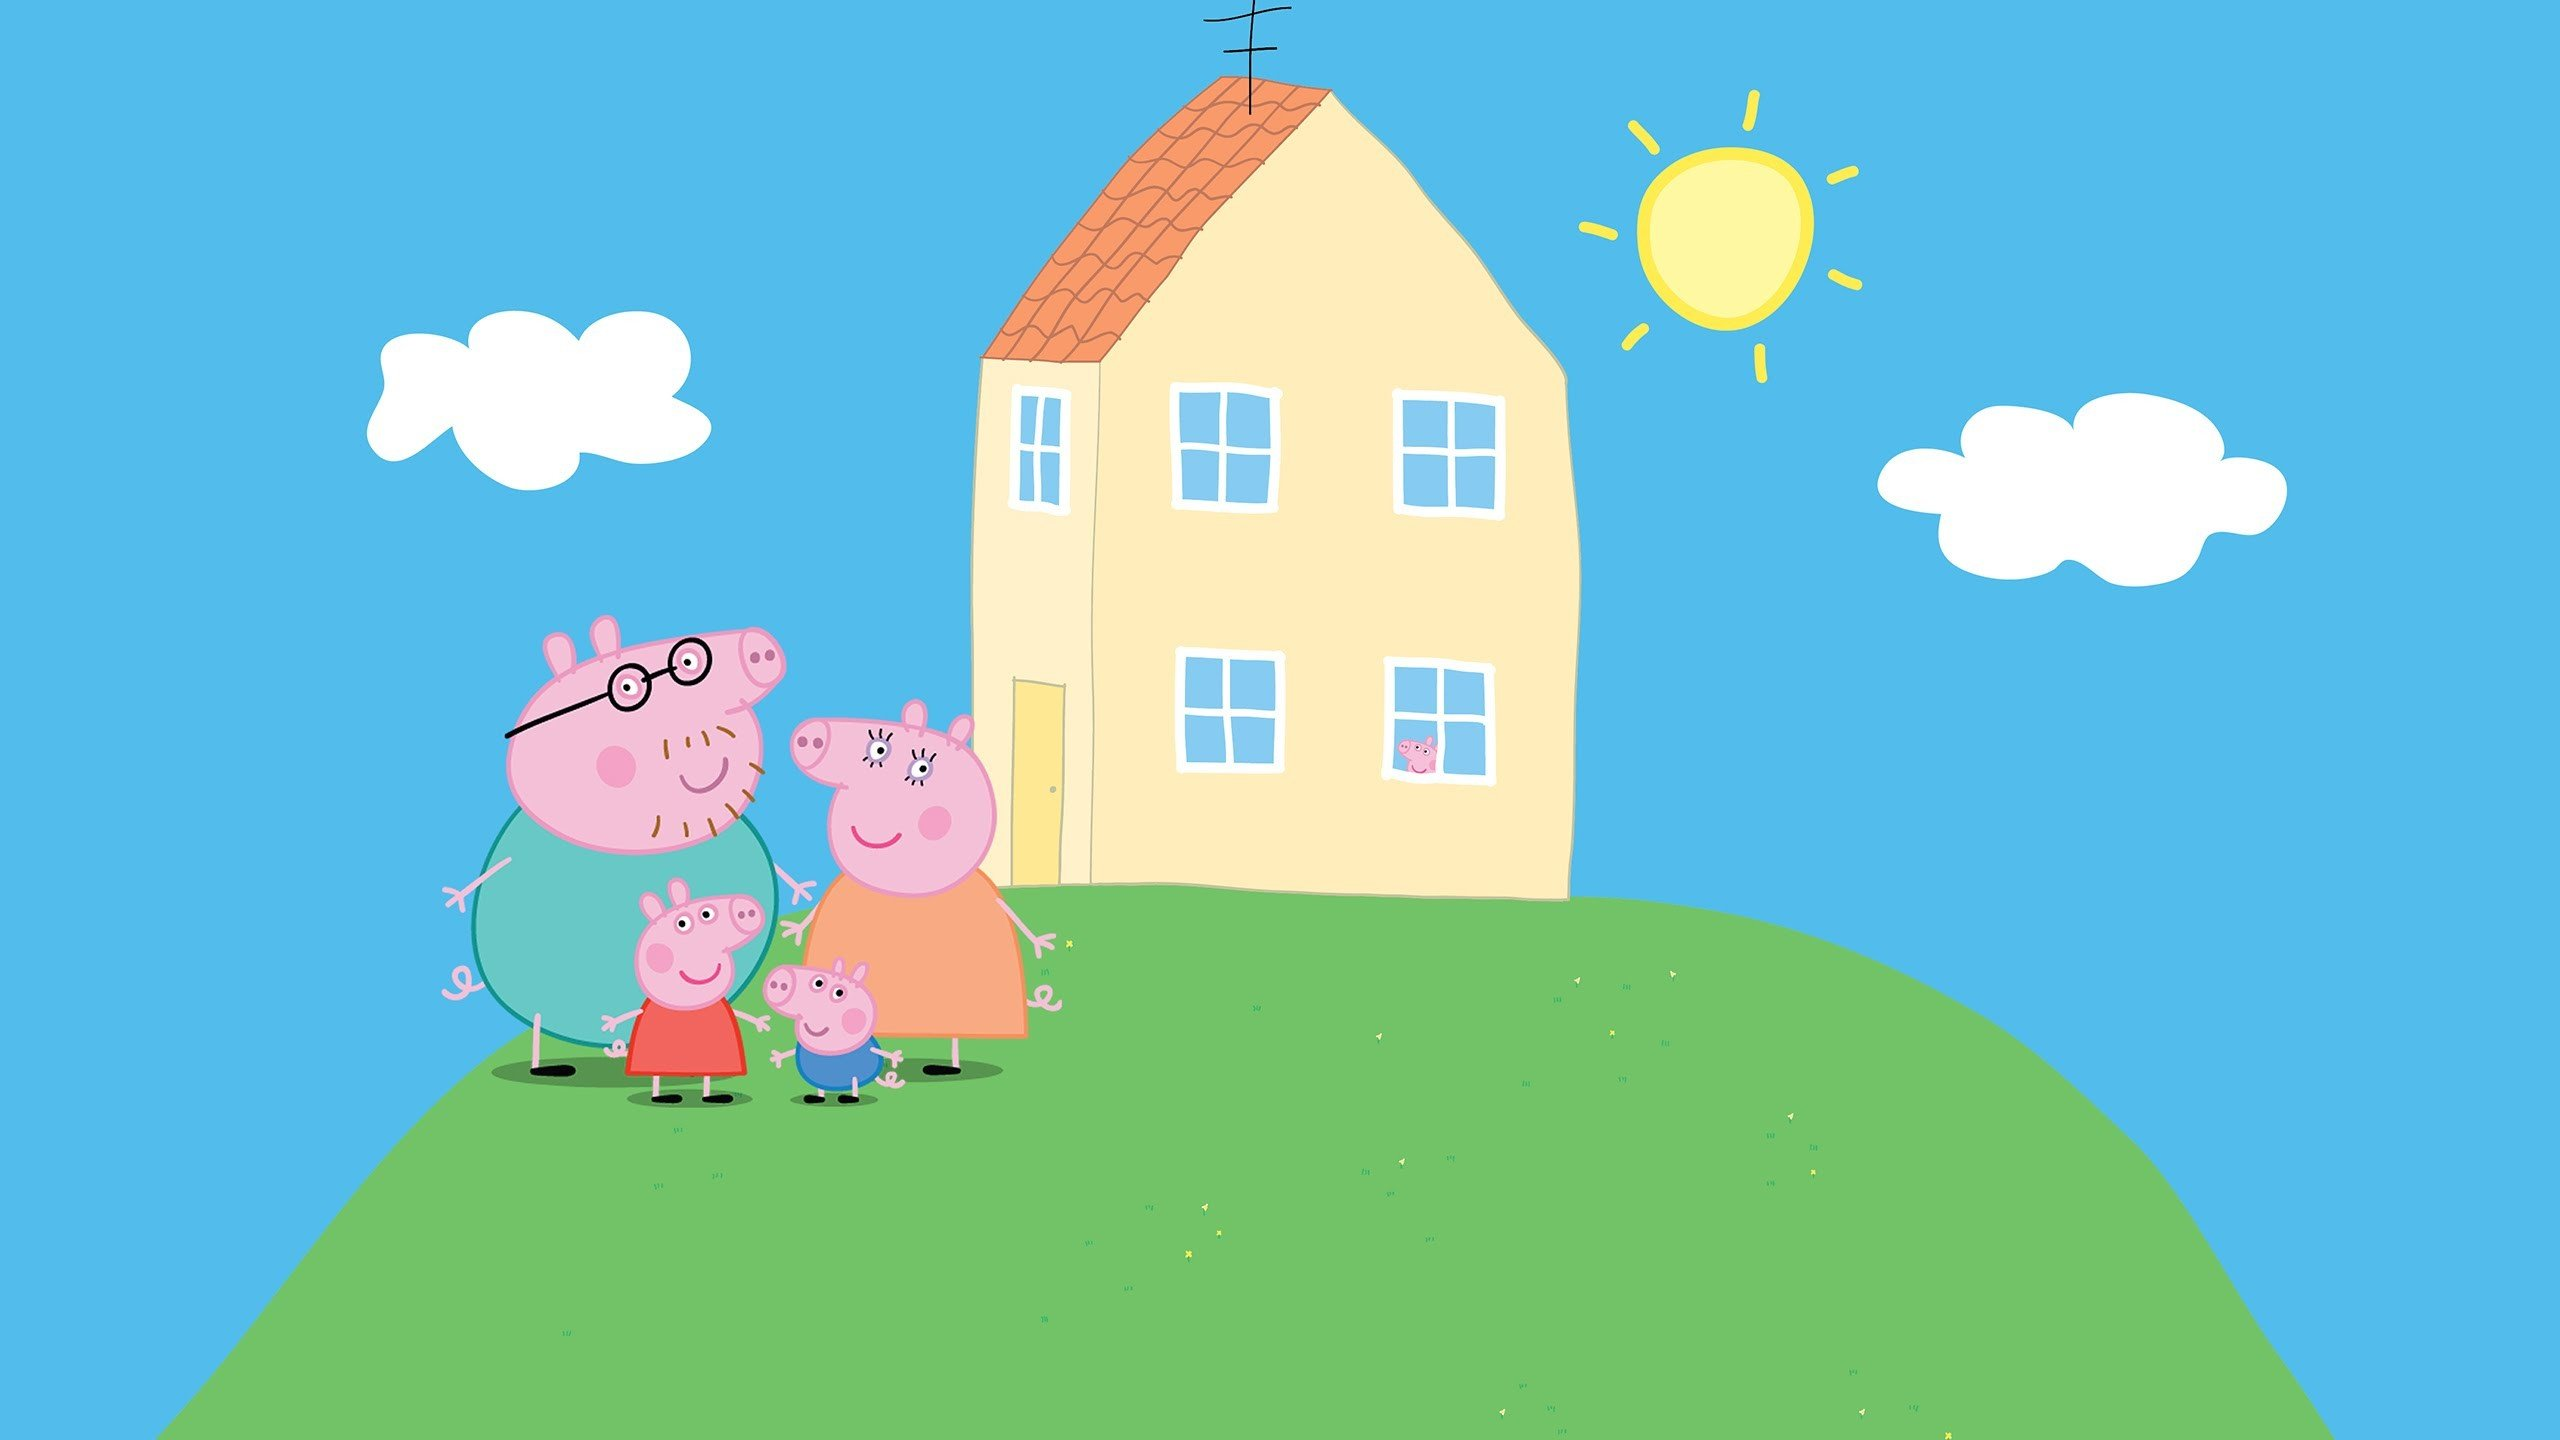 Peppa Pig Wallpaper   Peppa Pig Family And House 3105447   HD